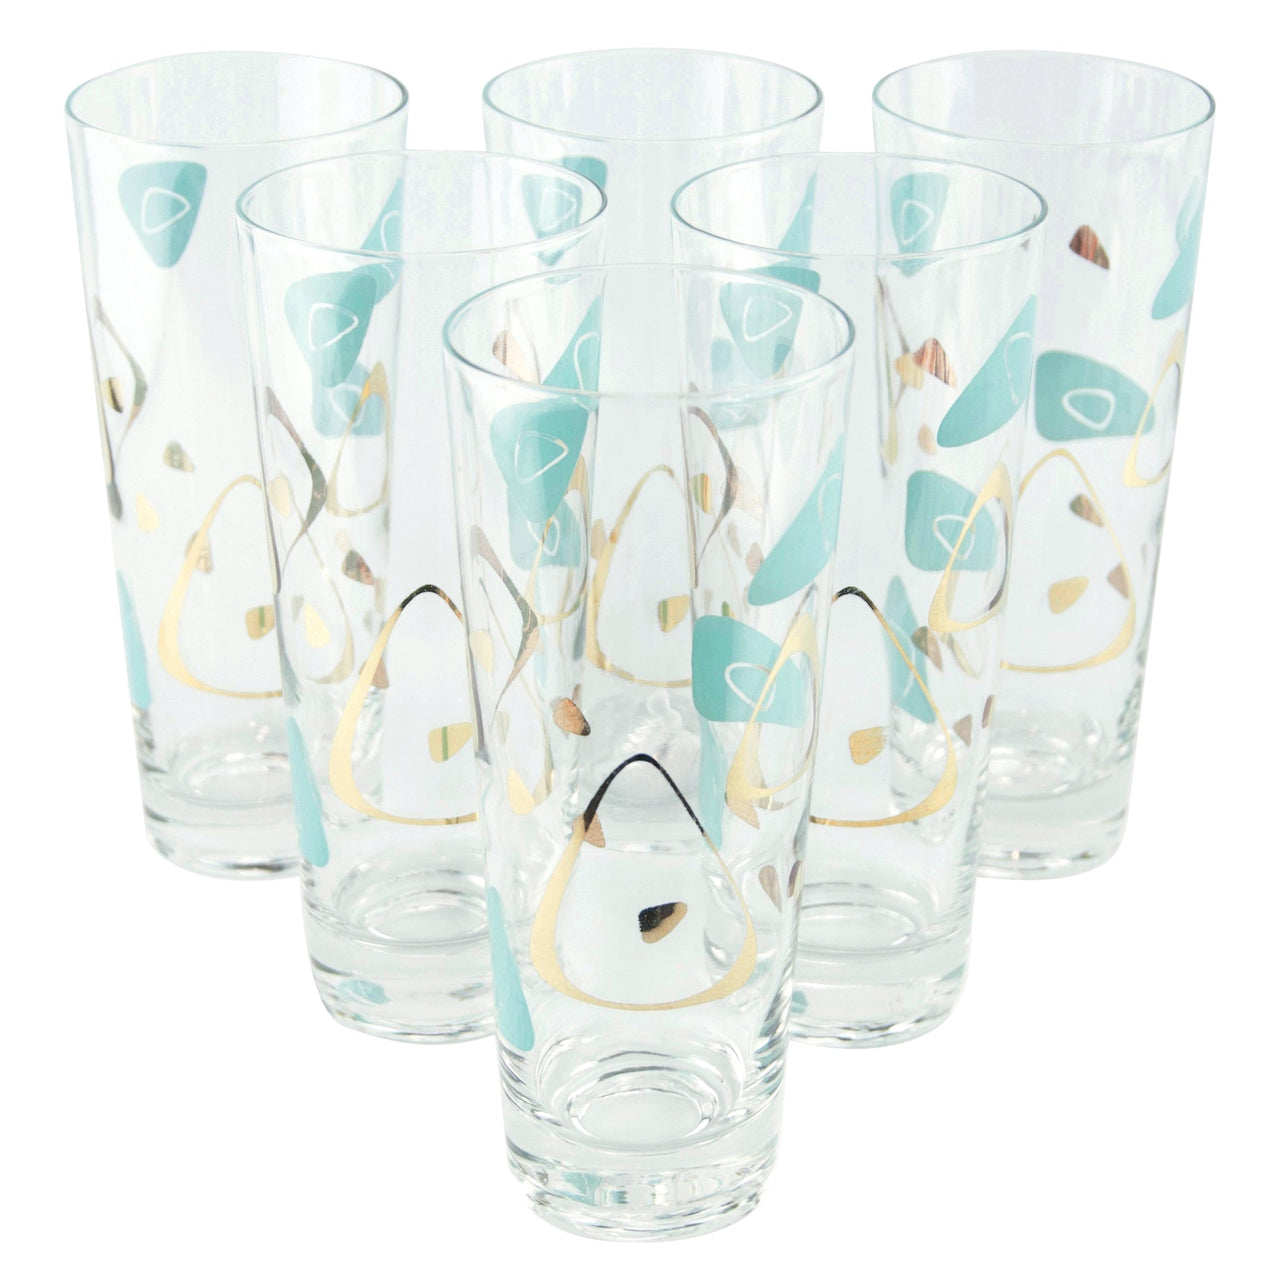 Aqua & Gold Atomic Collins Glasses | The Hour Shop Vintage